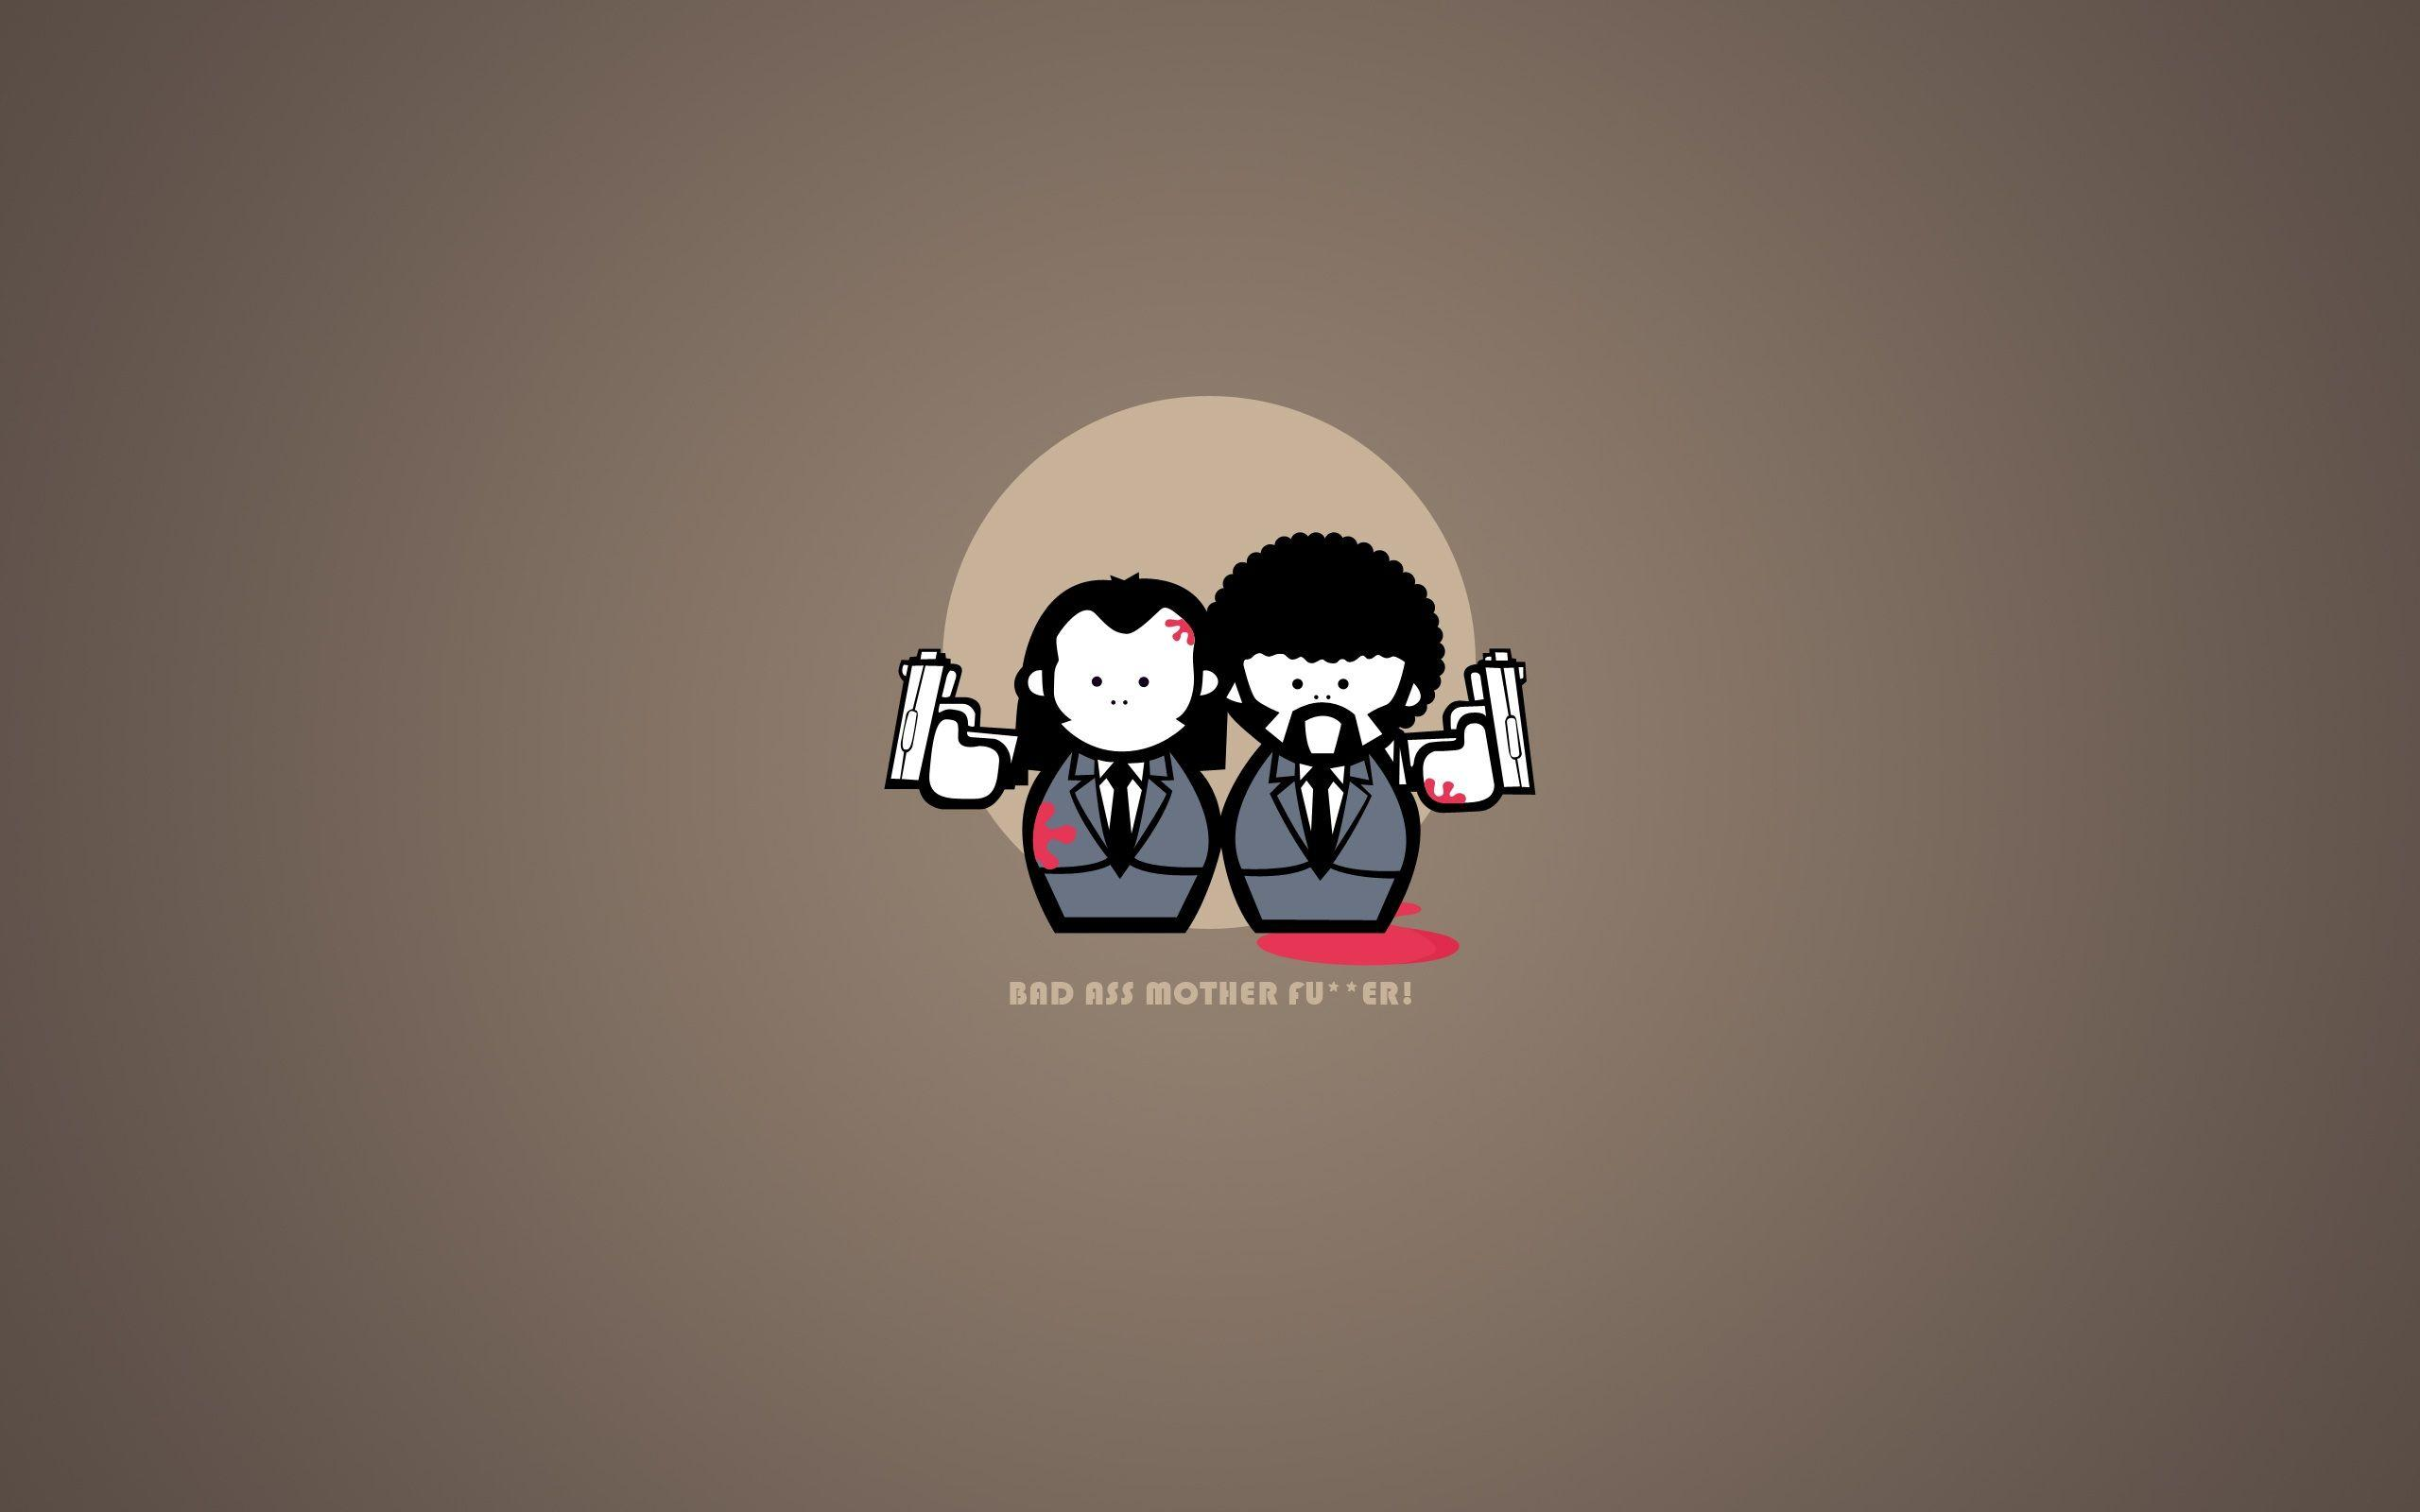 Bible Verse And Image Pulp Fiction Wallpaper: Pulp Fiction Backgrounds